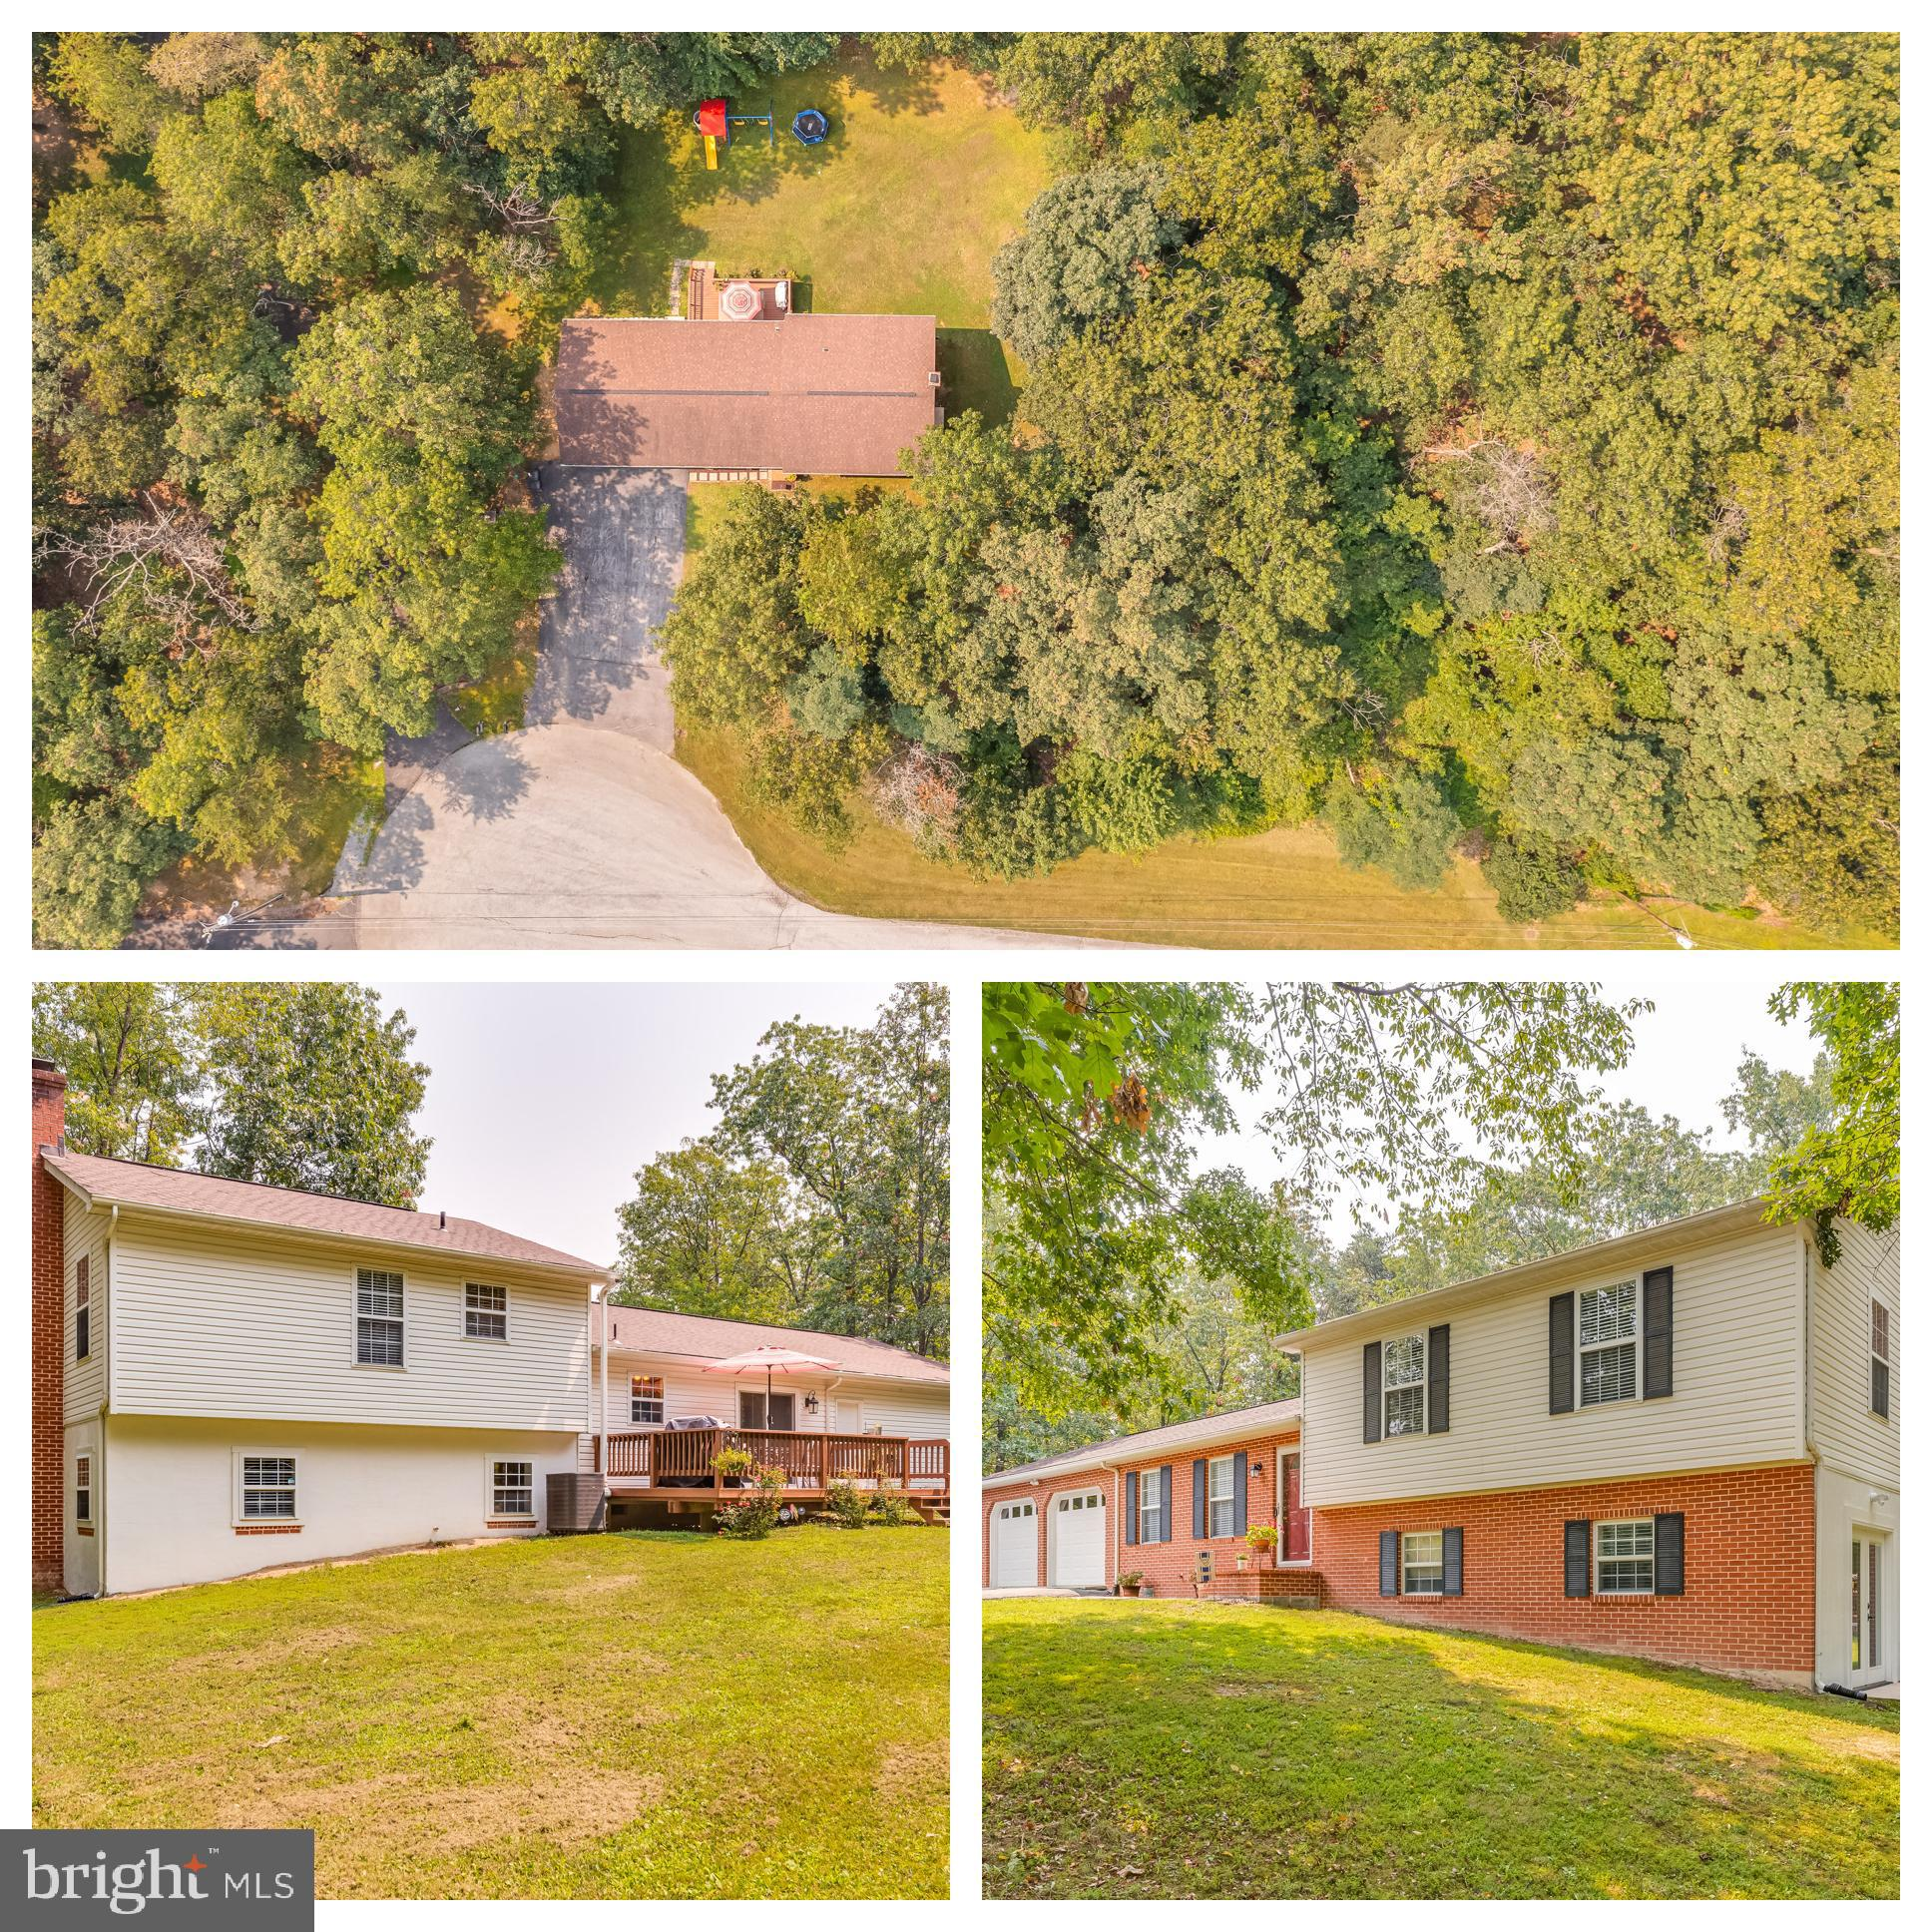 A serene quiet neighborhood in the woods. This home on 1.82 acres is located on a quiet cul-de-sac i